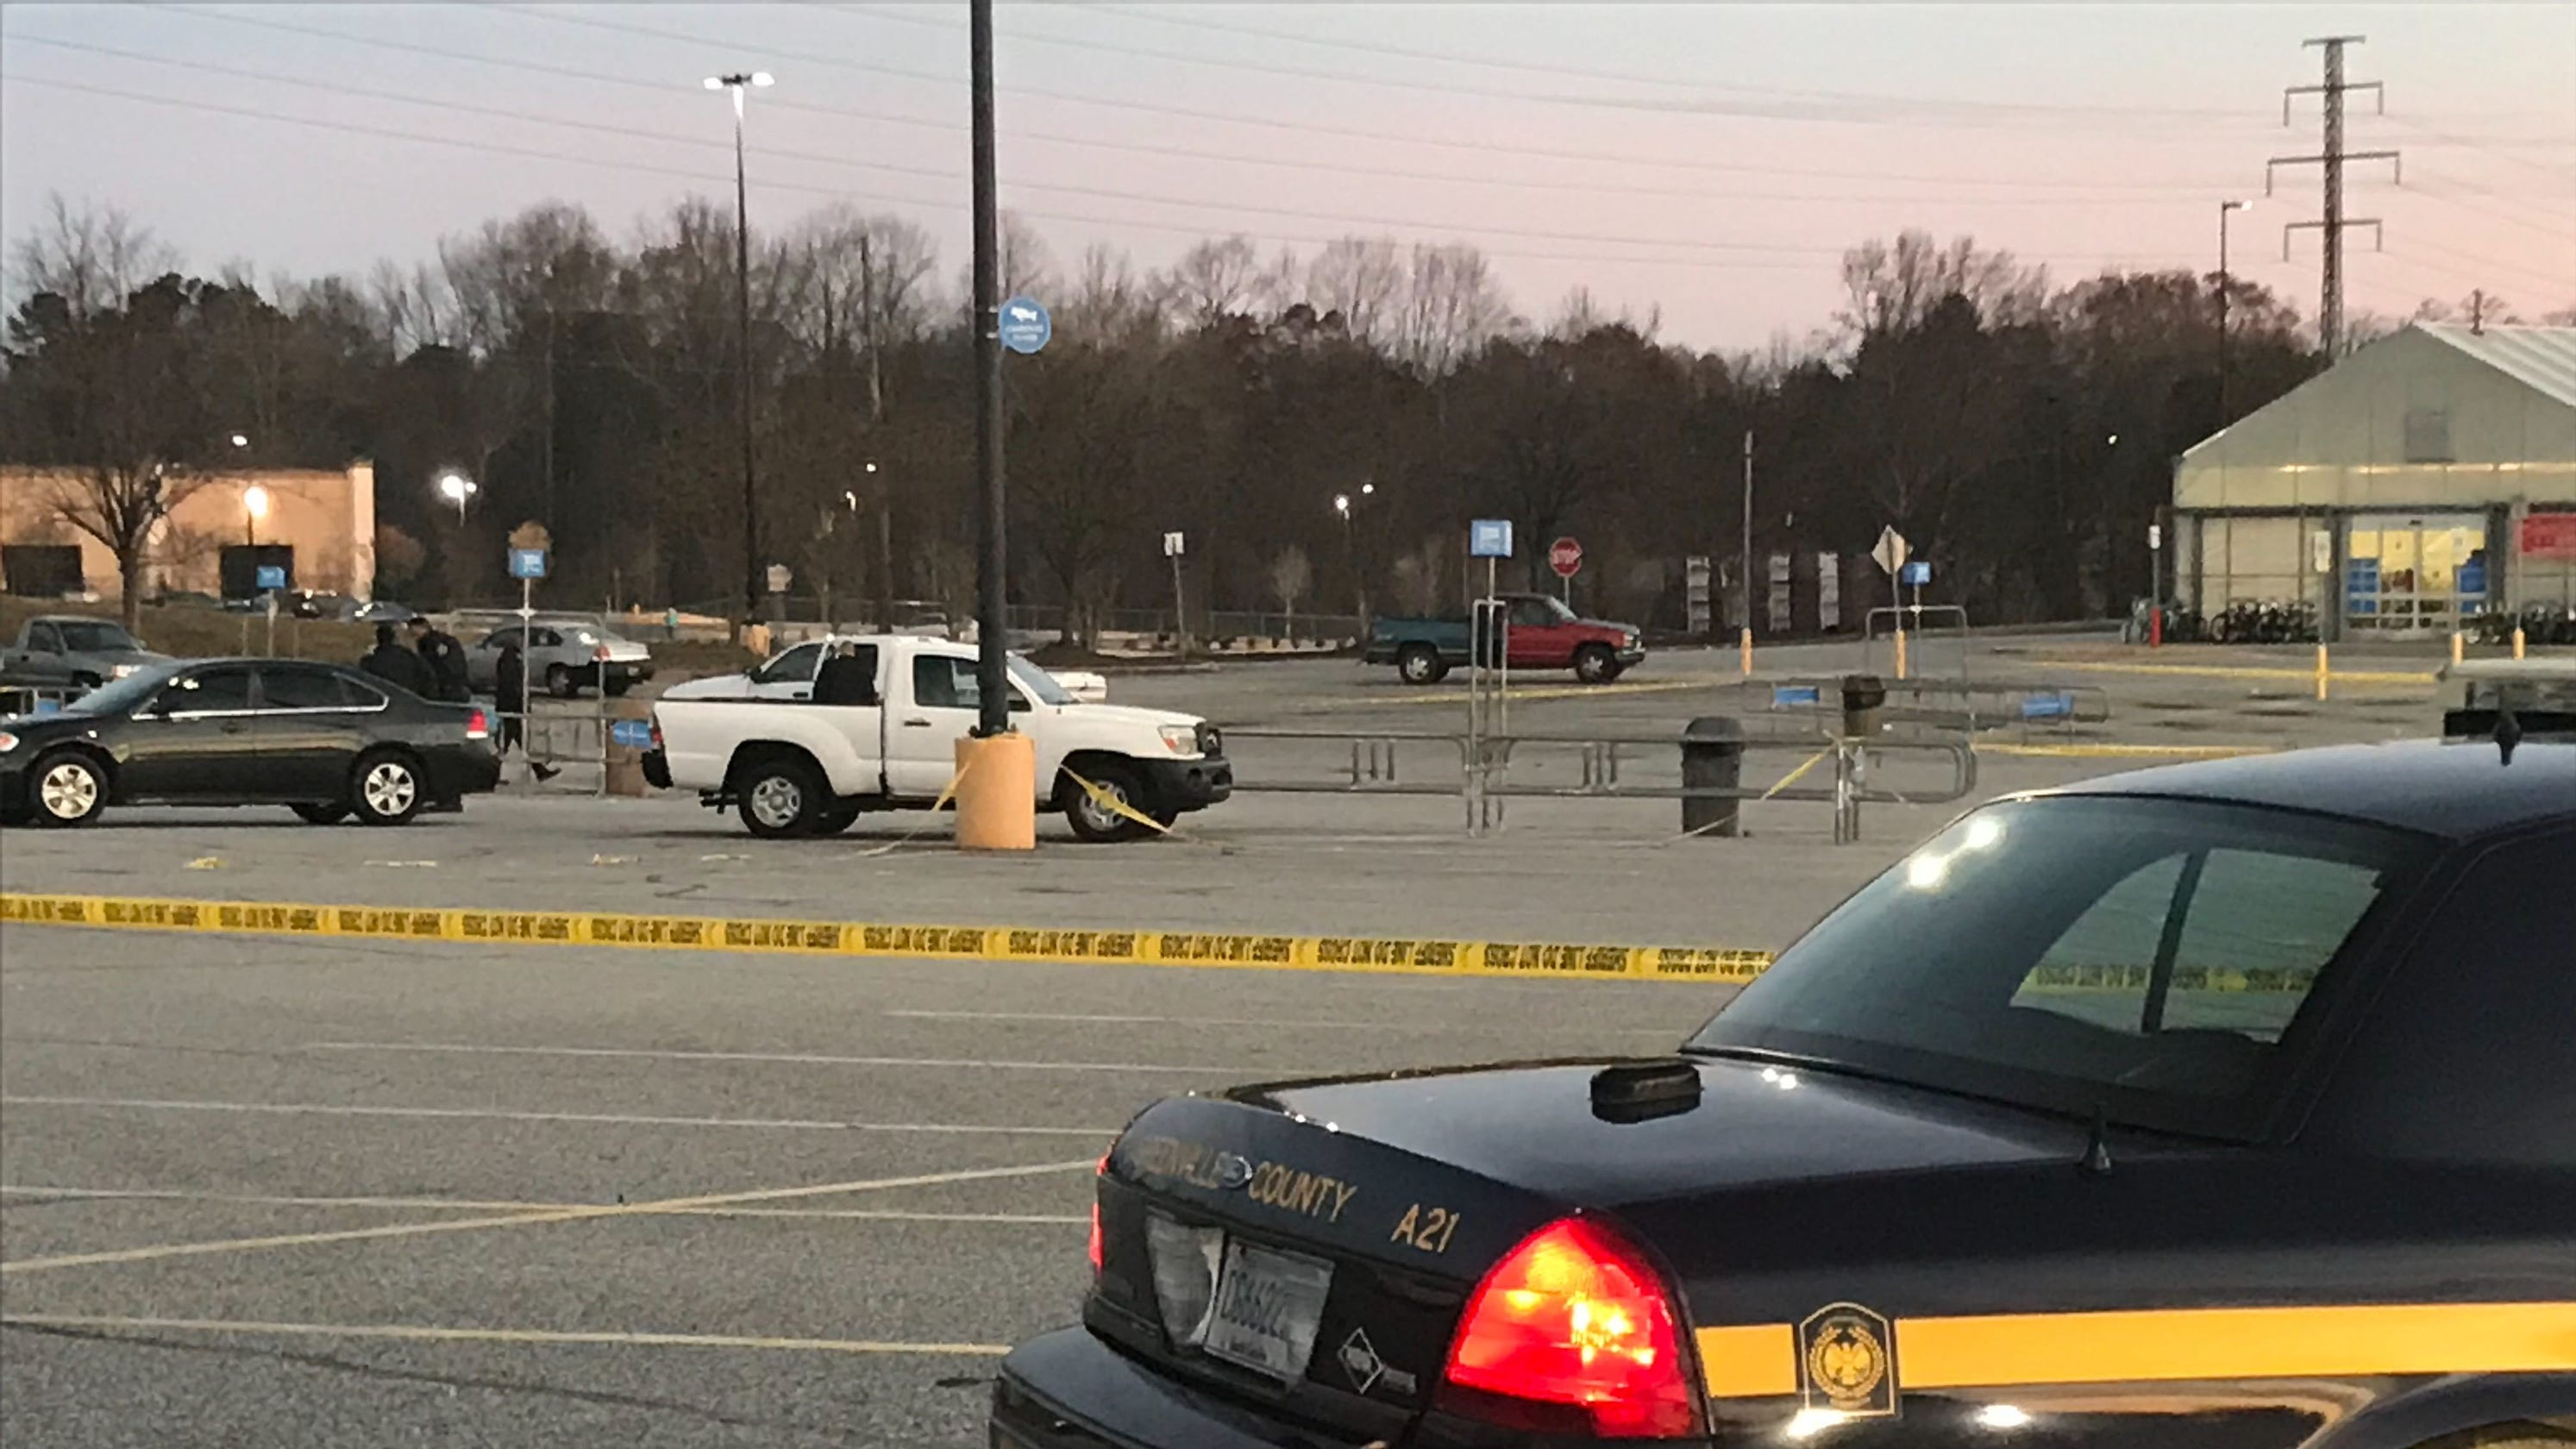 Death reported outside greenville county walmart